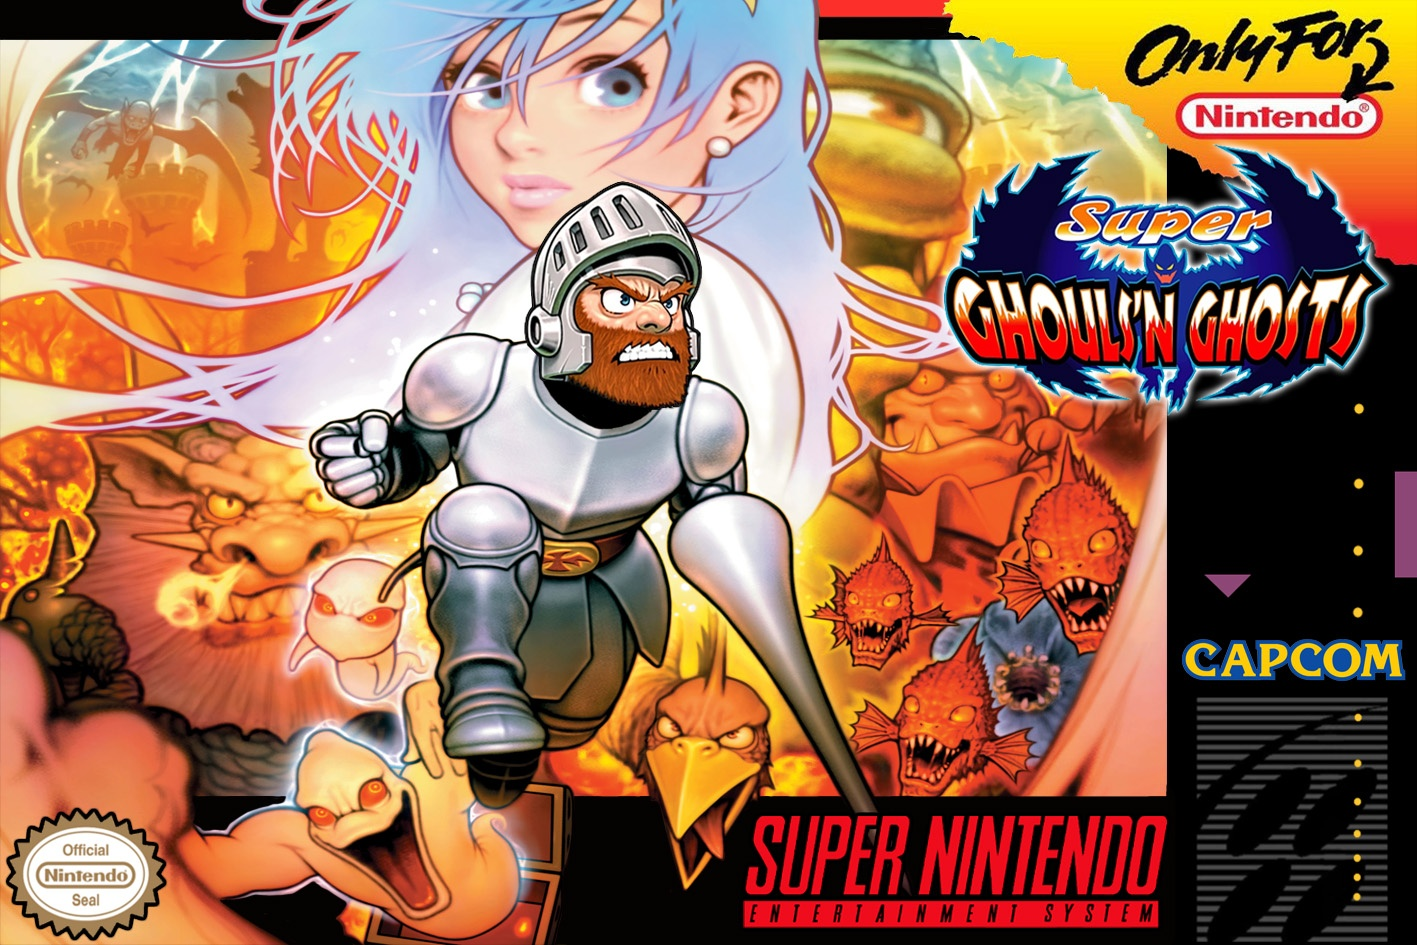 Super Ghouls 'n Ghosts box cover